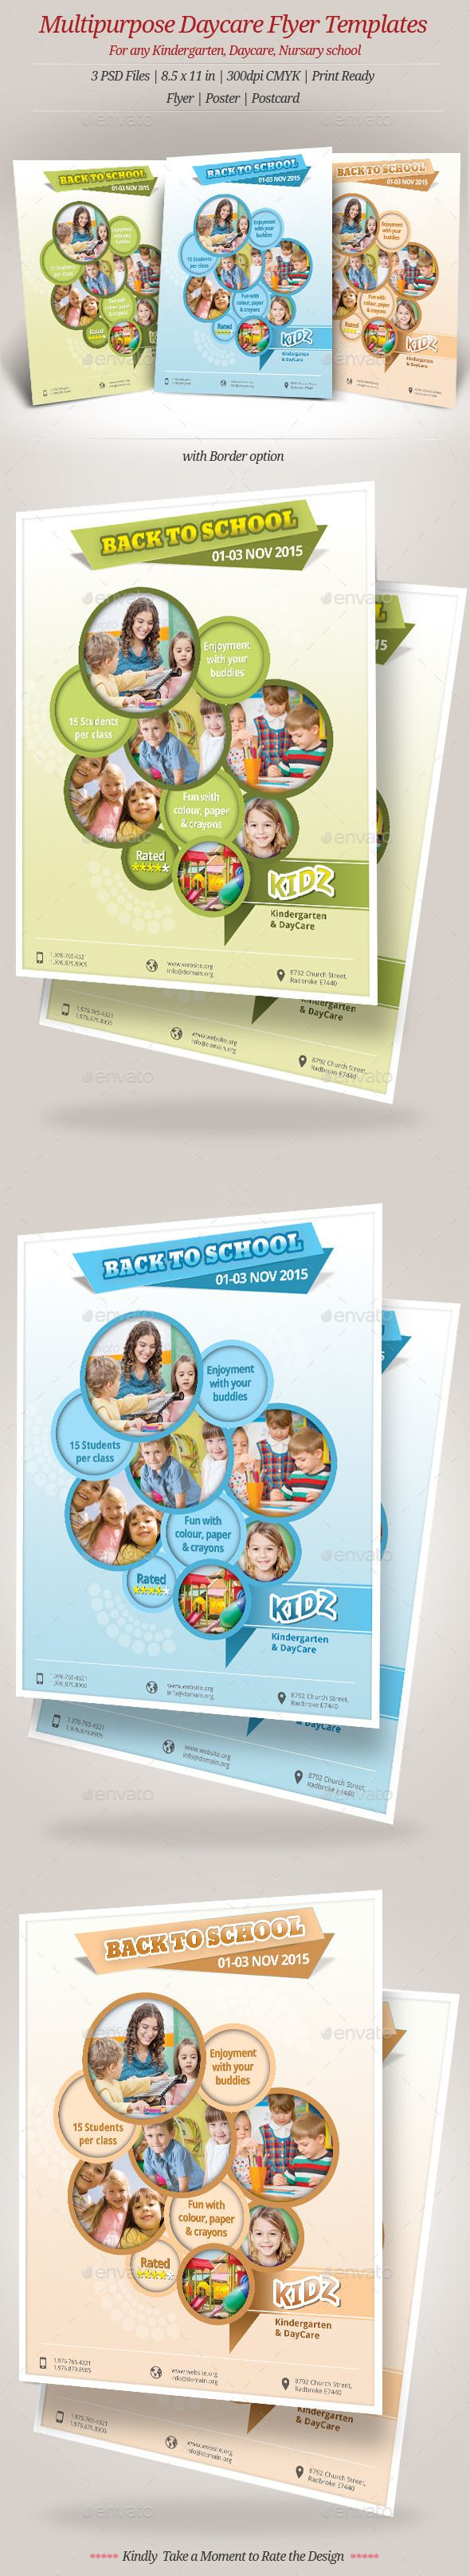 best images about design templates for school multipurpose daycare flyer templates for kindergarten daycare preschool that needs clean professional